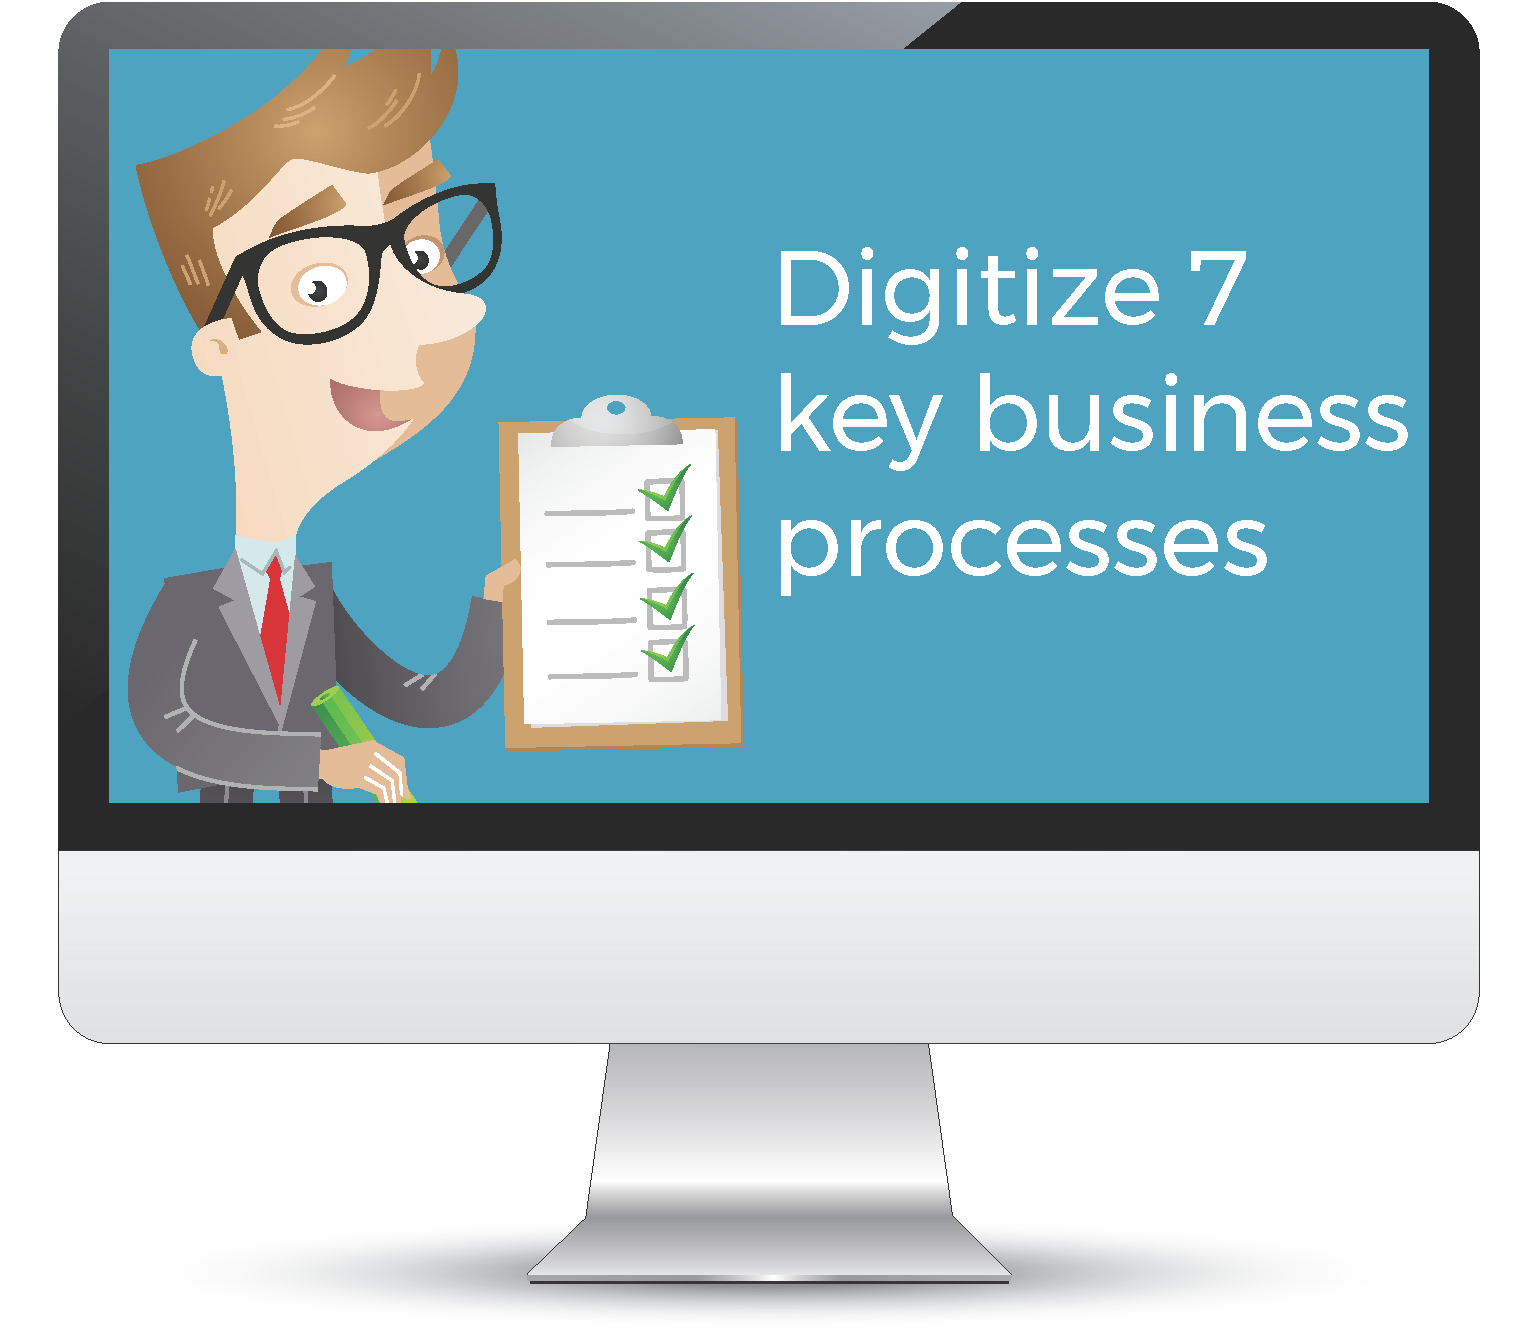 Digitize business processes